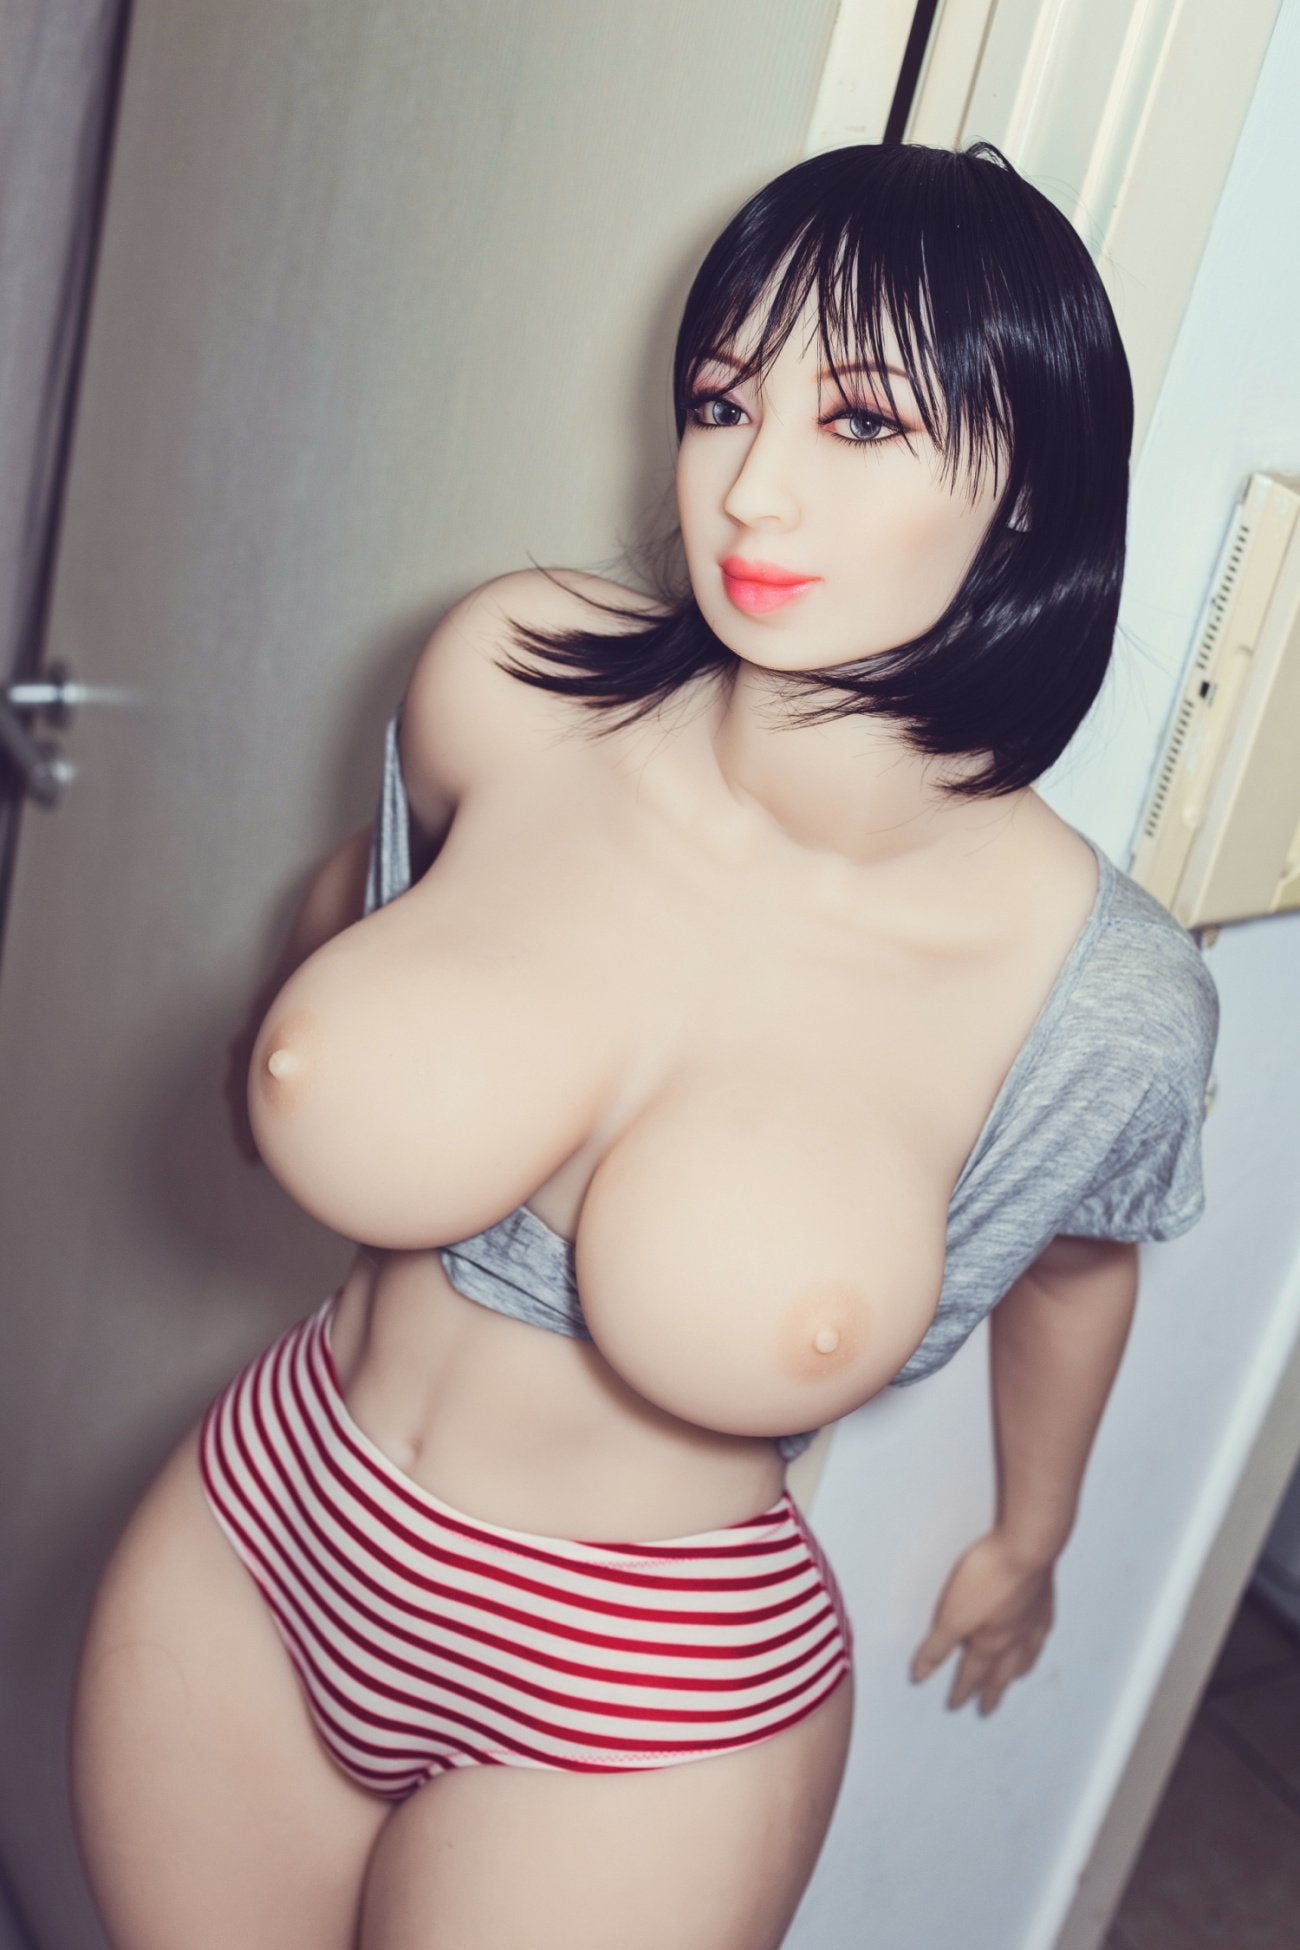 shar 163cm black hair curvy big boobs tpe wm bbw sex doll(4)